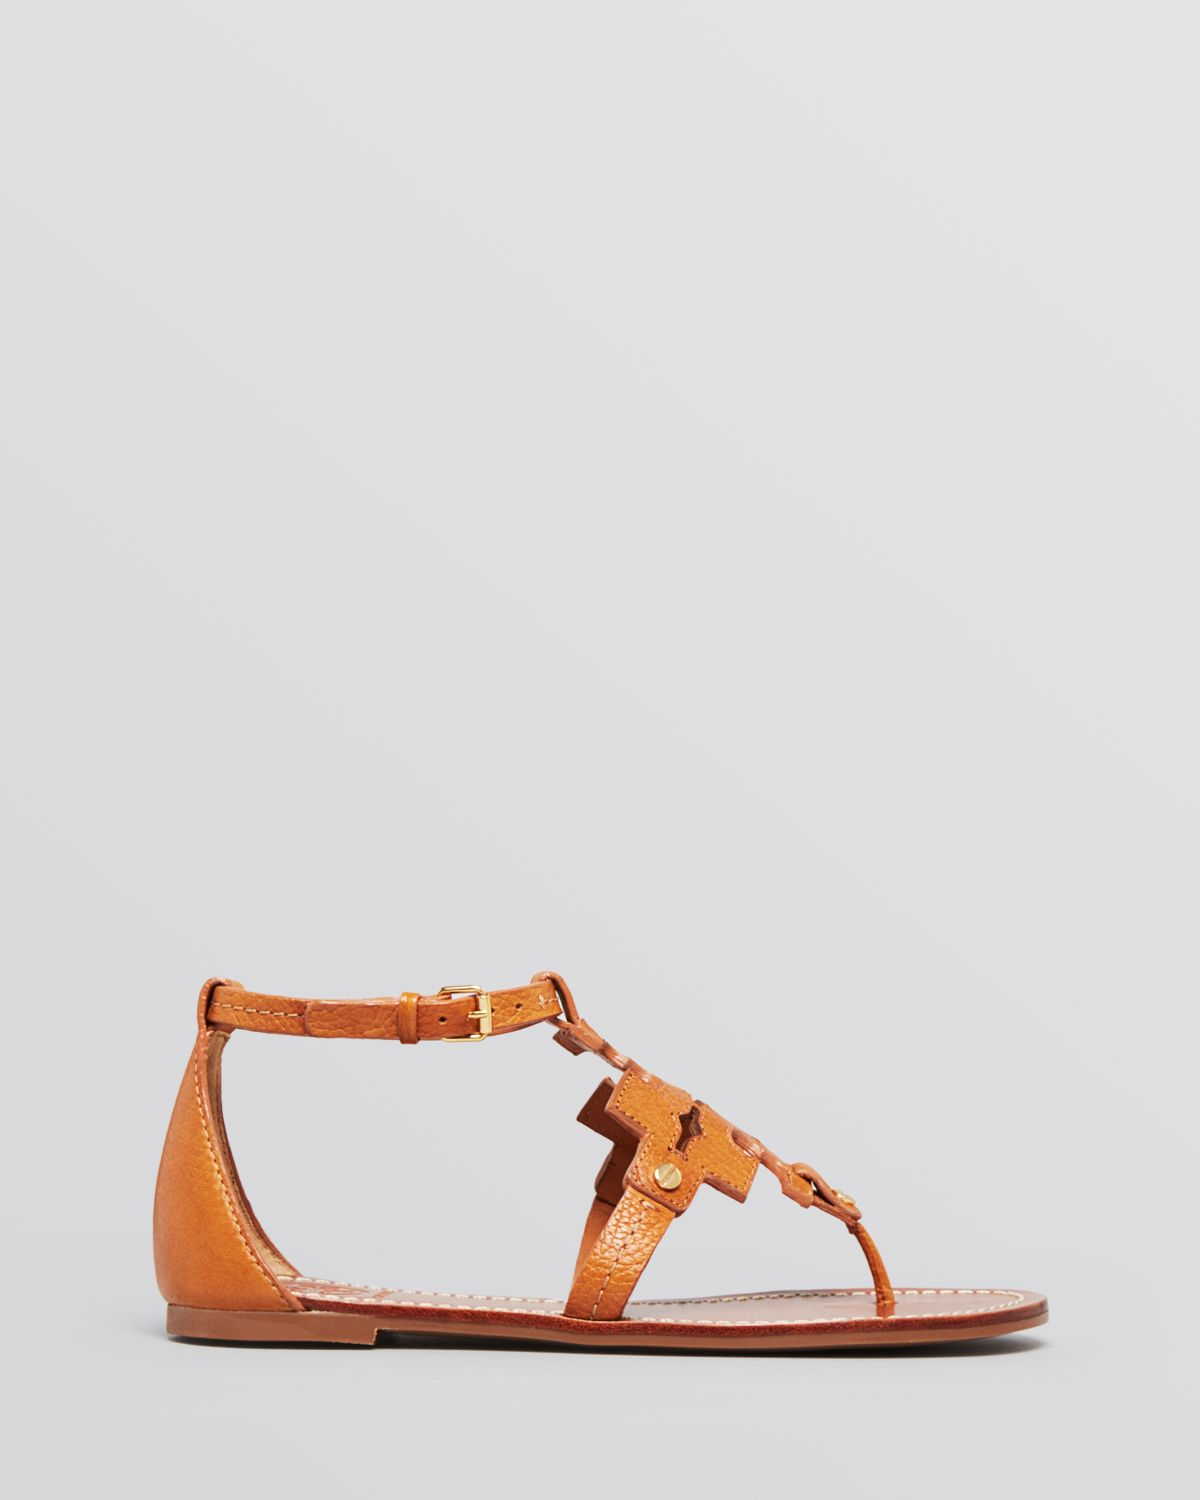 673066462e20 Lyst - Tory Burch Flat Thong Sandals - Phoebe in Brown